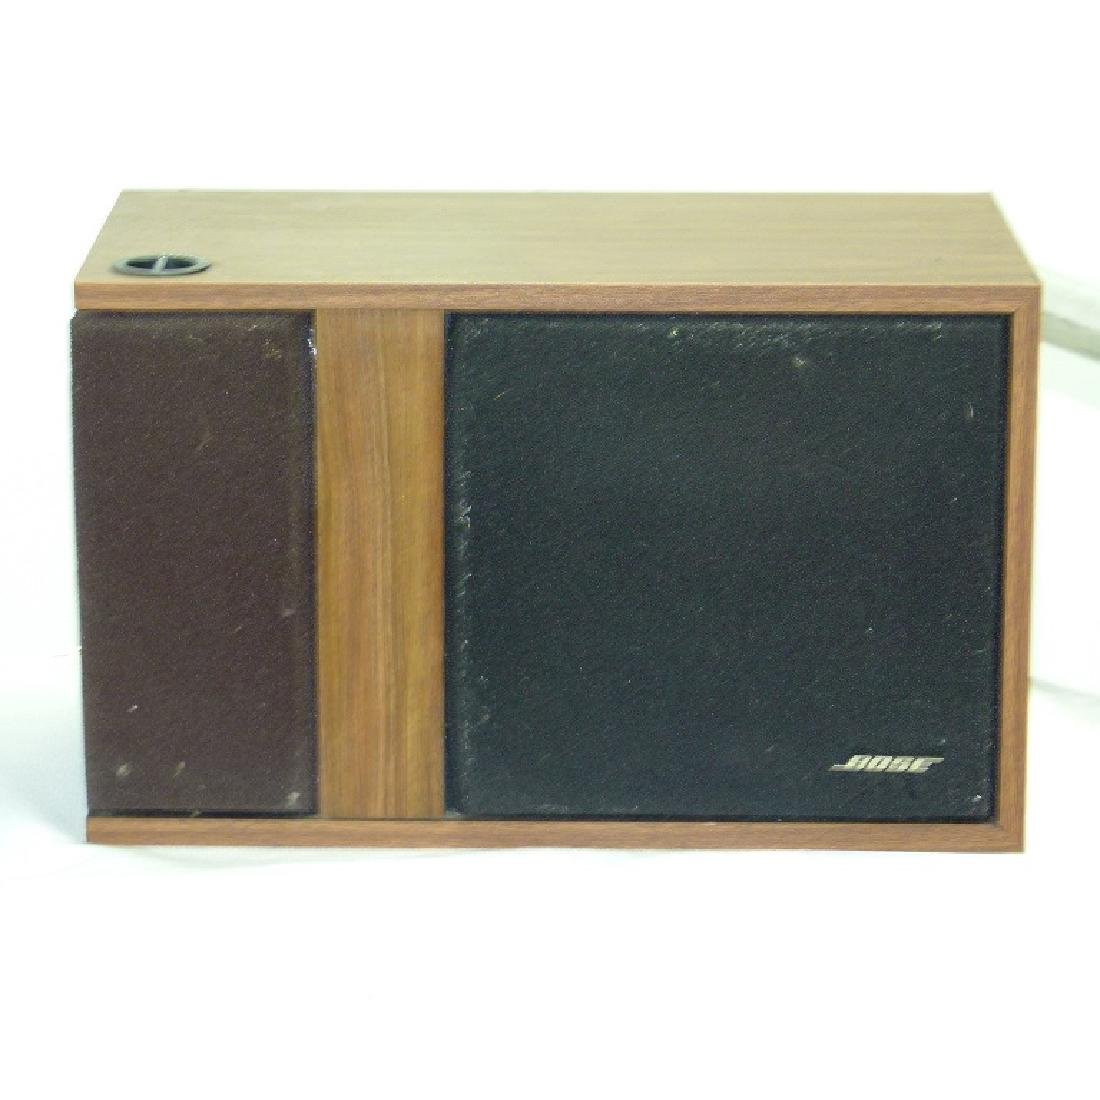 BOSE 301 SPEAKERS, C. 1970/80 - 4